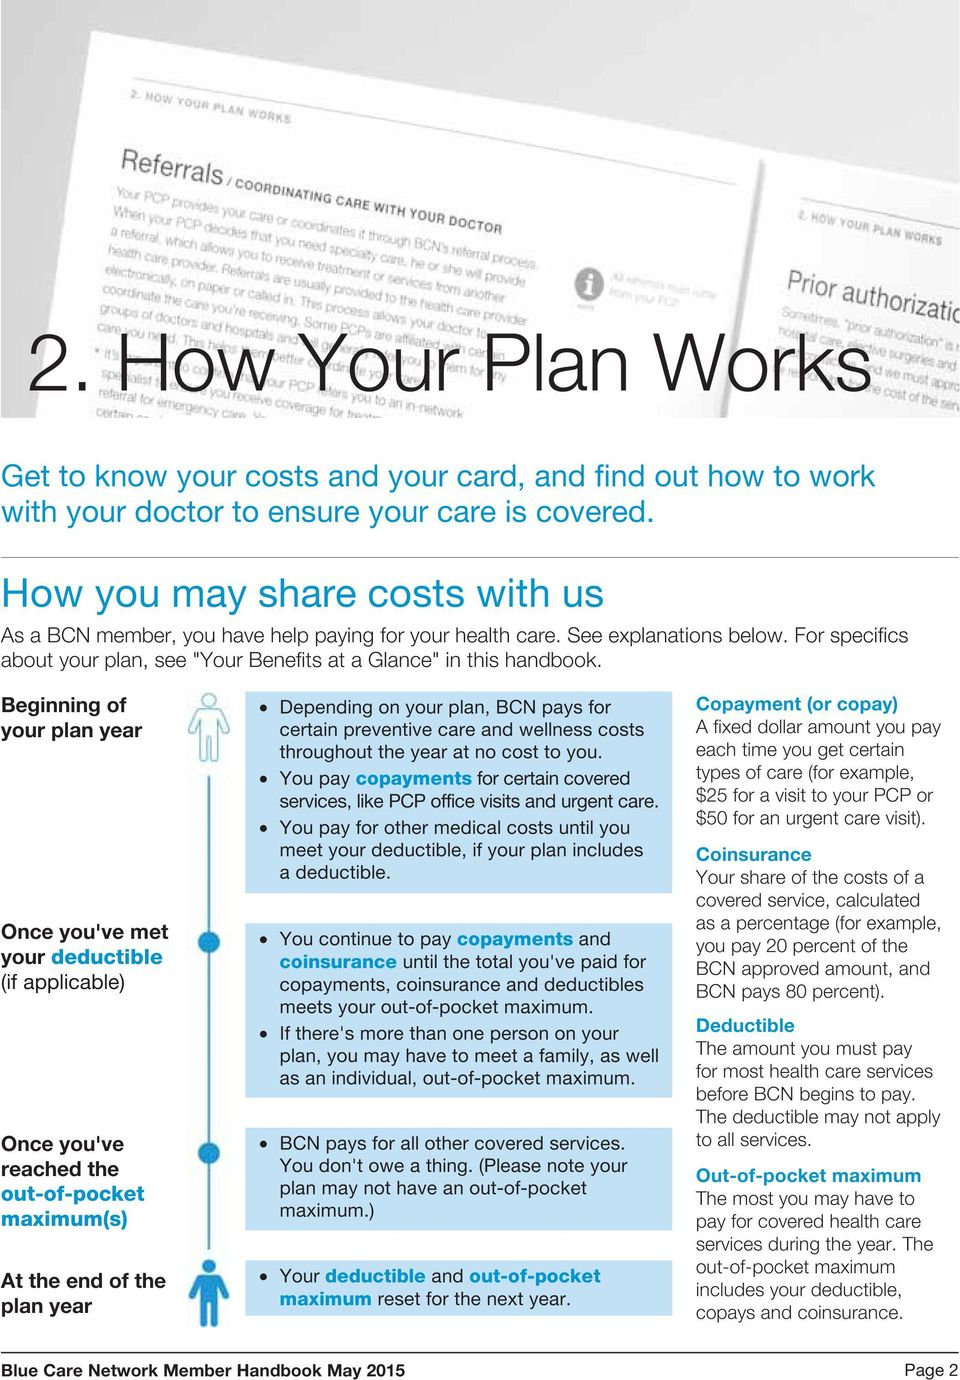 Beginning of your plan year Onceyou'vemet your deductible (if applicable) Once you've reached the out-of-pocket maximum(s) At the end of the plan year Depending on your plan, BCN pays for certain